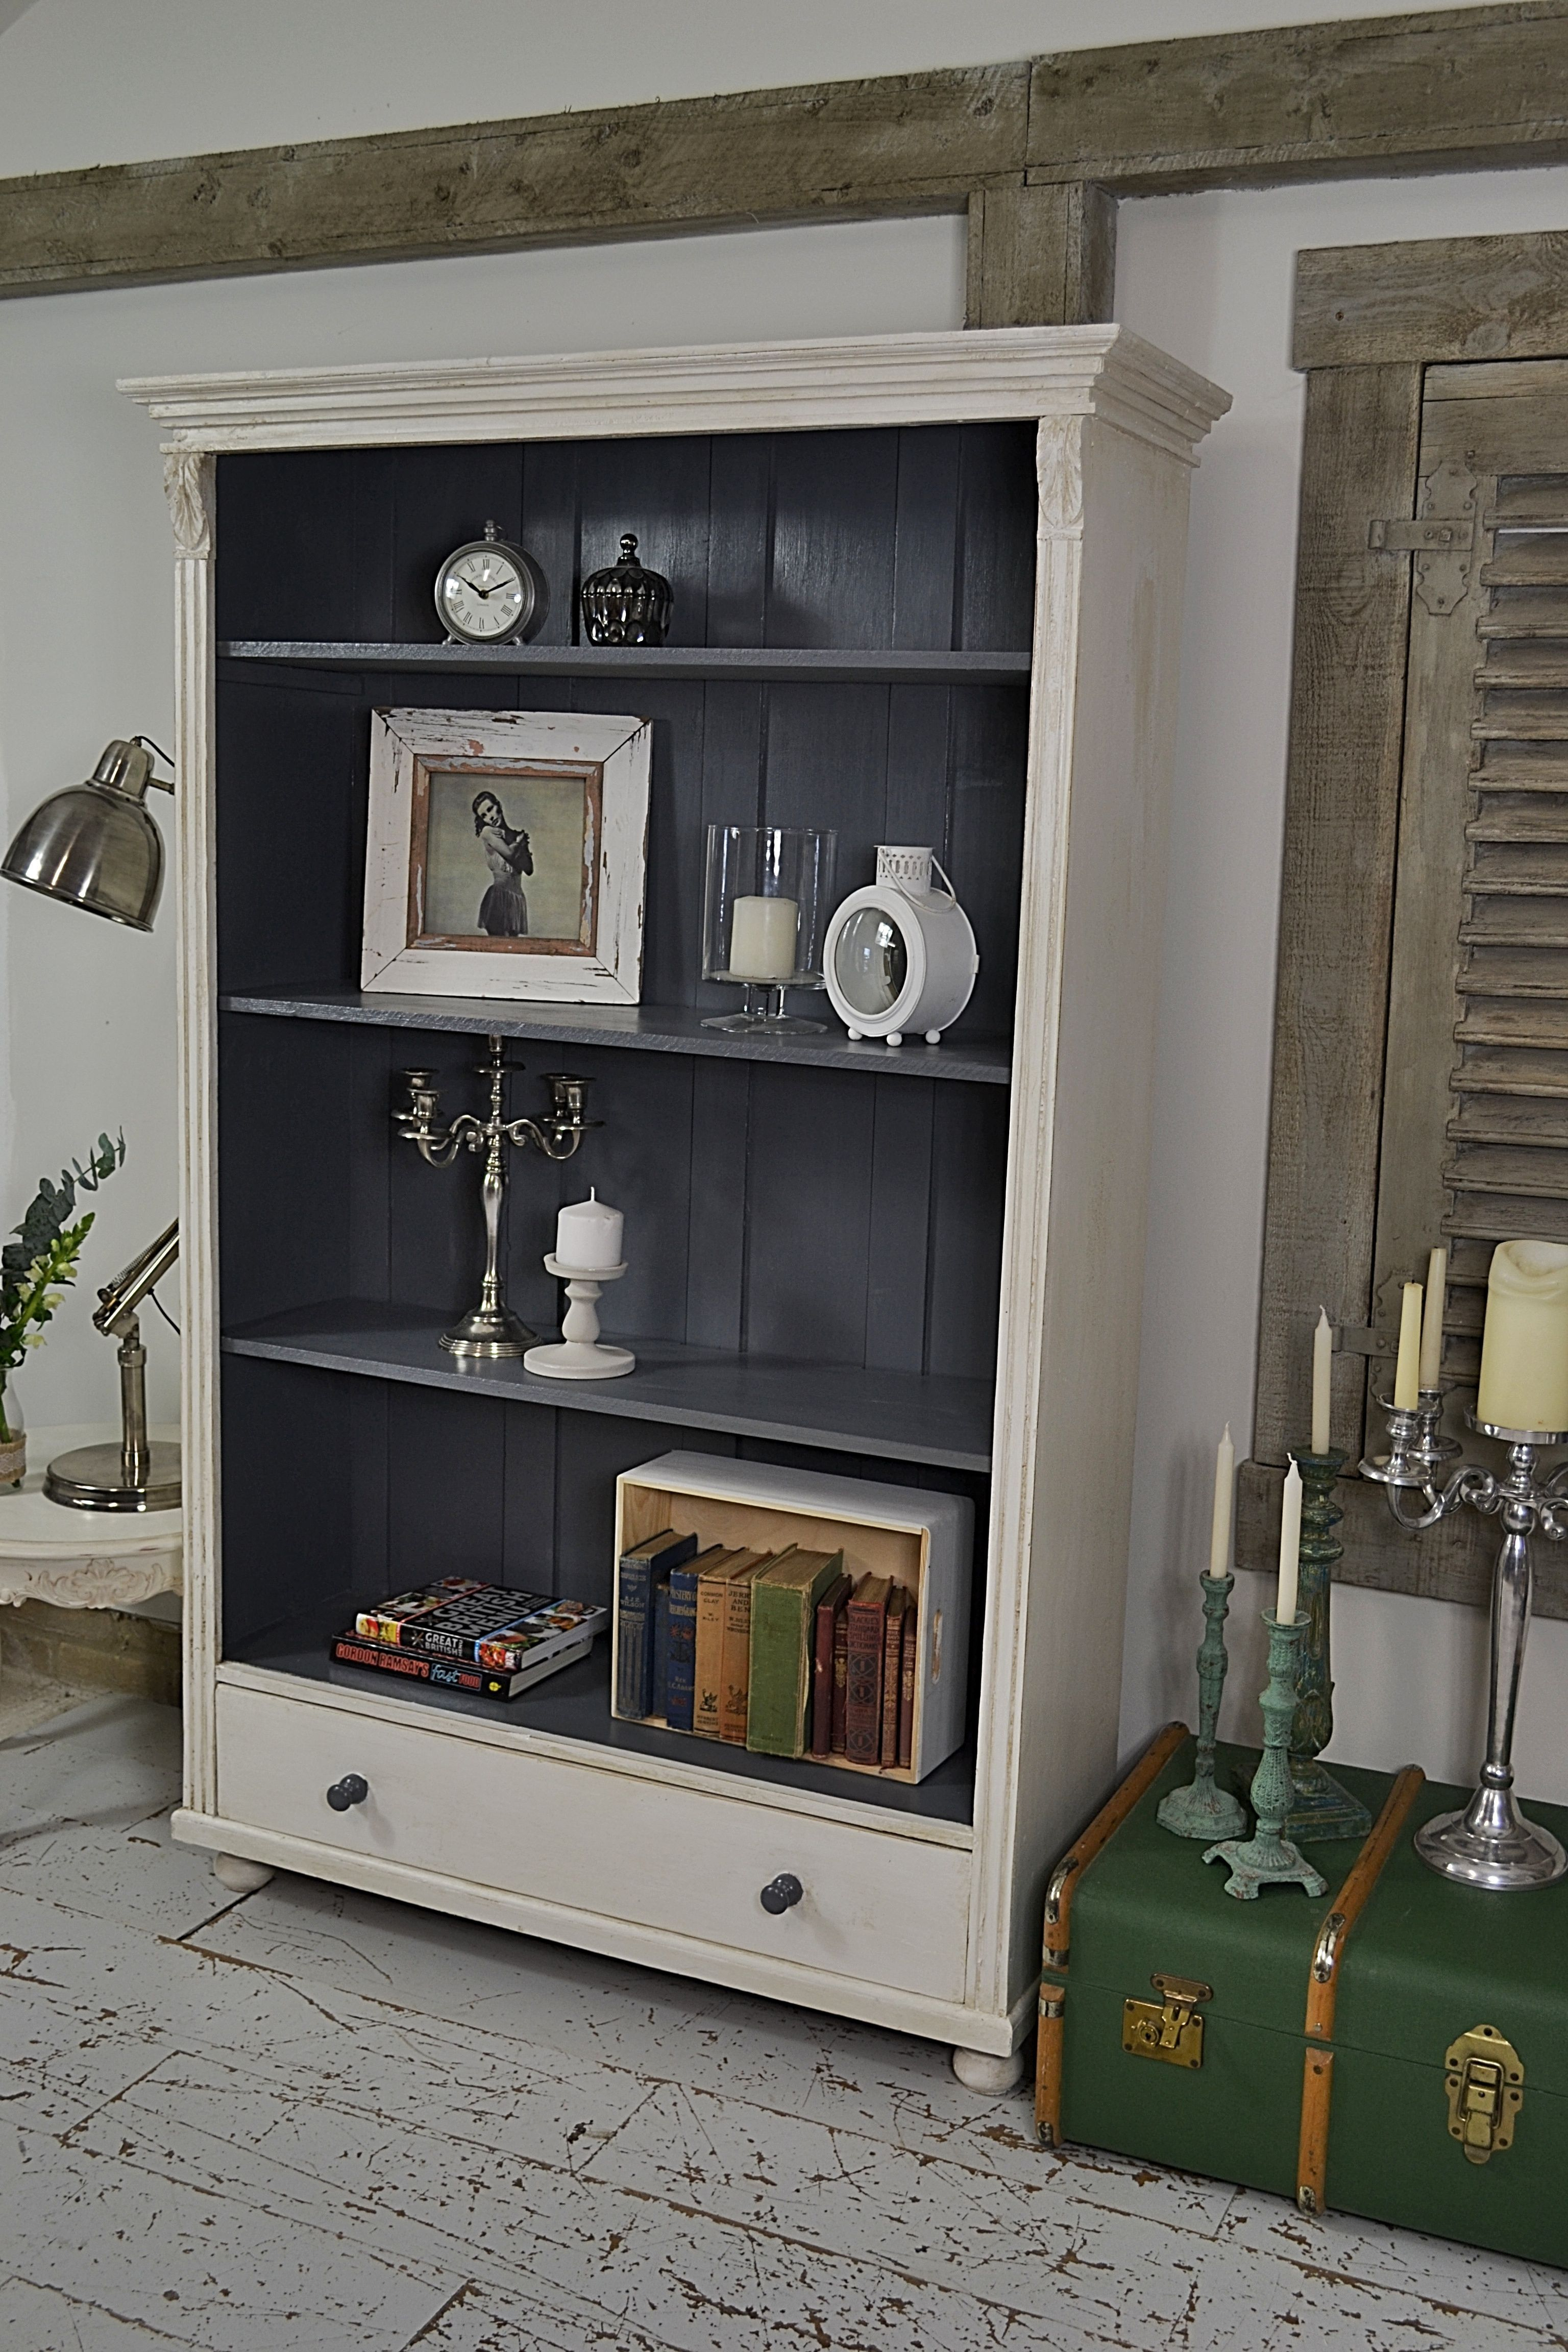 This Rustic Shabby Chic Antique Pine Bookcase From Holland Is Perfect For Storing All Your